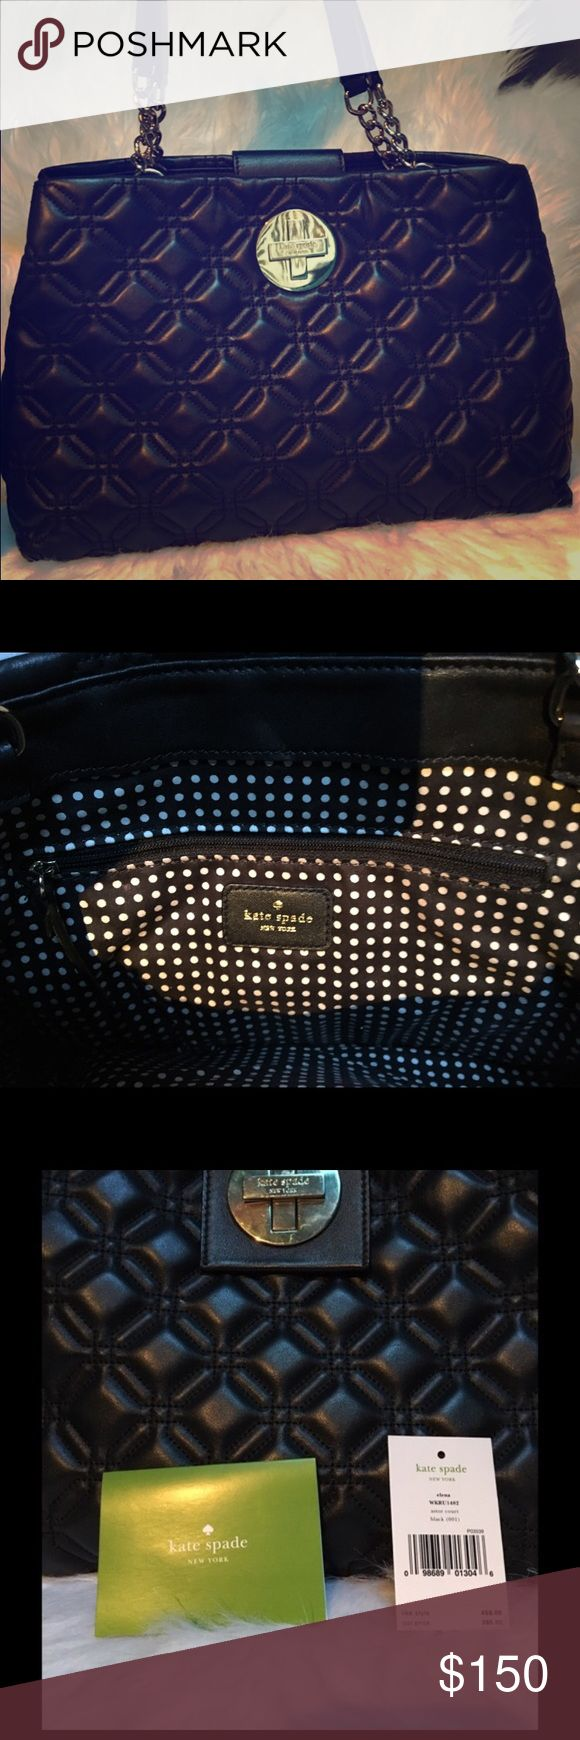 Kate Spade Elena Black Quilted Shoulder bag Kate spade Elena shoulder bag with gold hardware and Kate spade turn lock closure in front. Interior is cotton polka dotted. In great condition. No scuffs on the leather. kate spade Bags Shoulder Bags